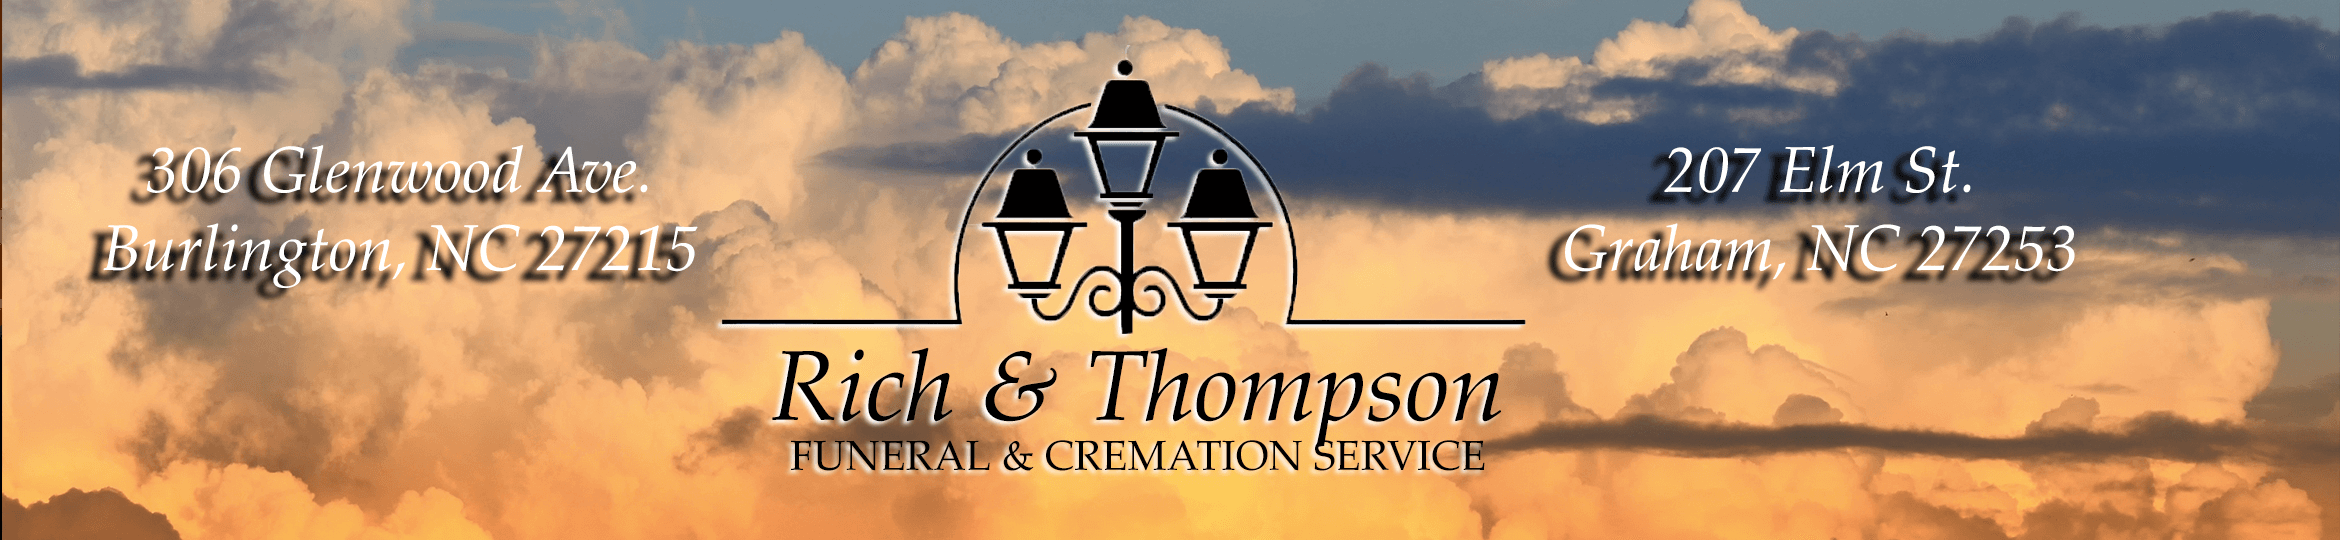 All Tributes | Rich & Thompson Funeral & Cremation Service